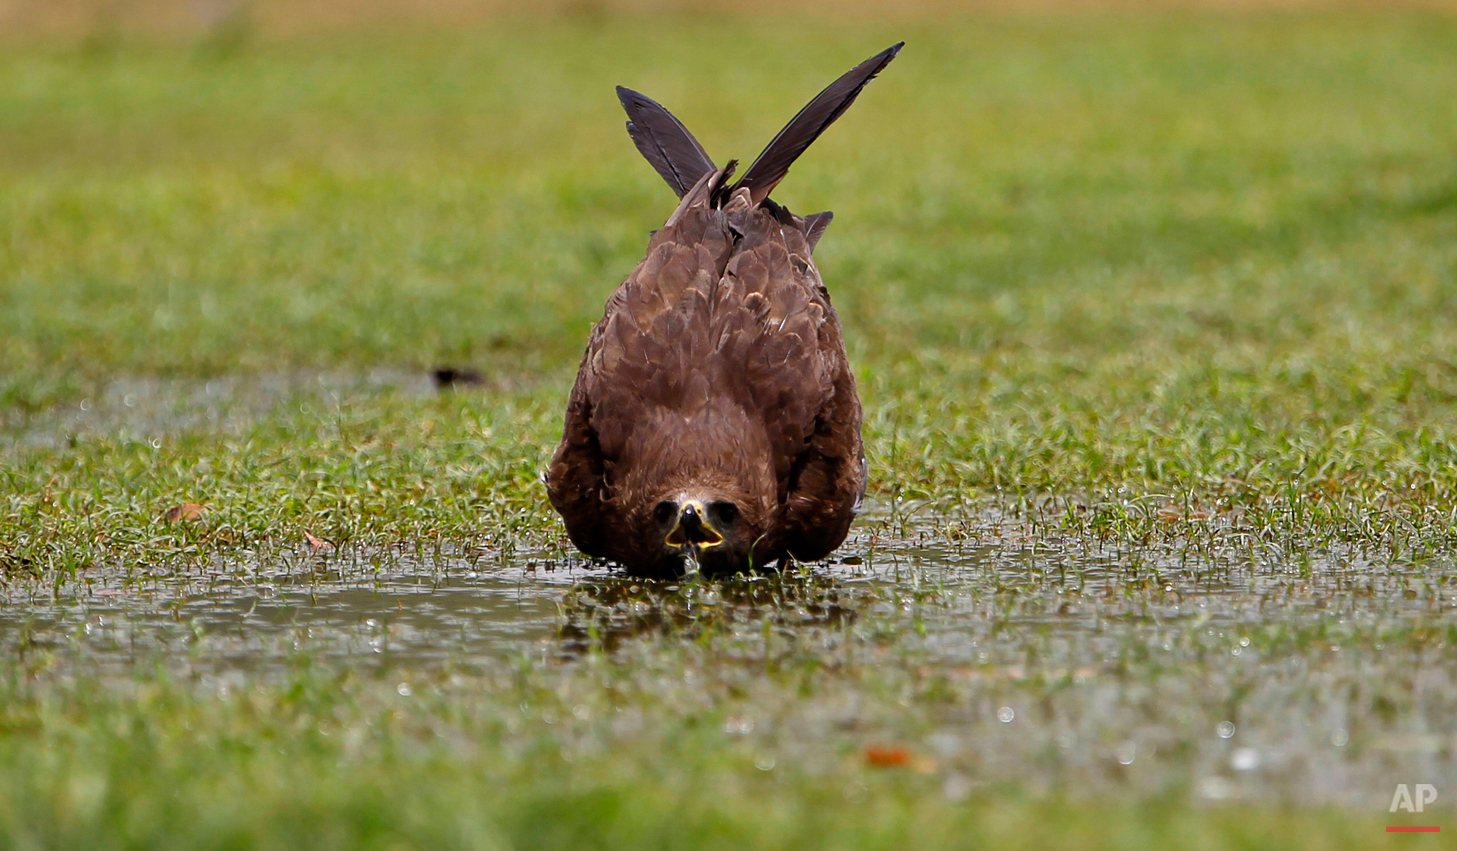 A kite bird drinks water from a puddle in a public lawn in New Delhi, India, Friday, June 1, 2012. The weather in northern India has been extremely hot in recent days with temperatures reaching as high as 45 degrees Celsius, or 113 degrees Fahrenheit. (AP Photo/Saurabh Das)